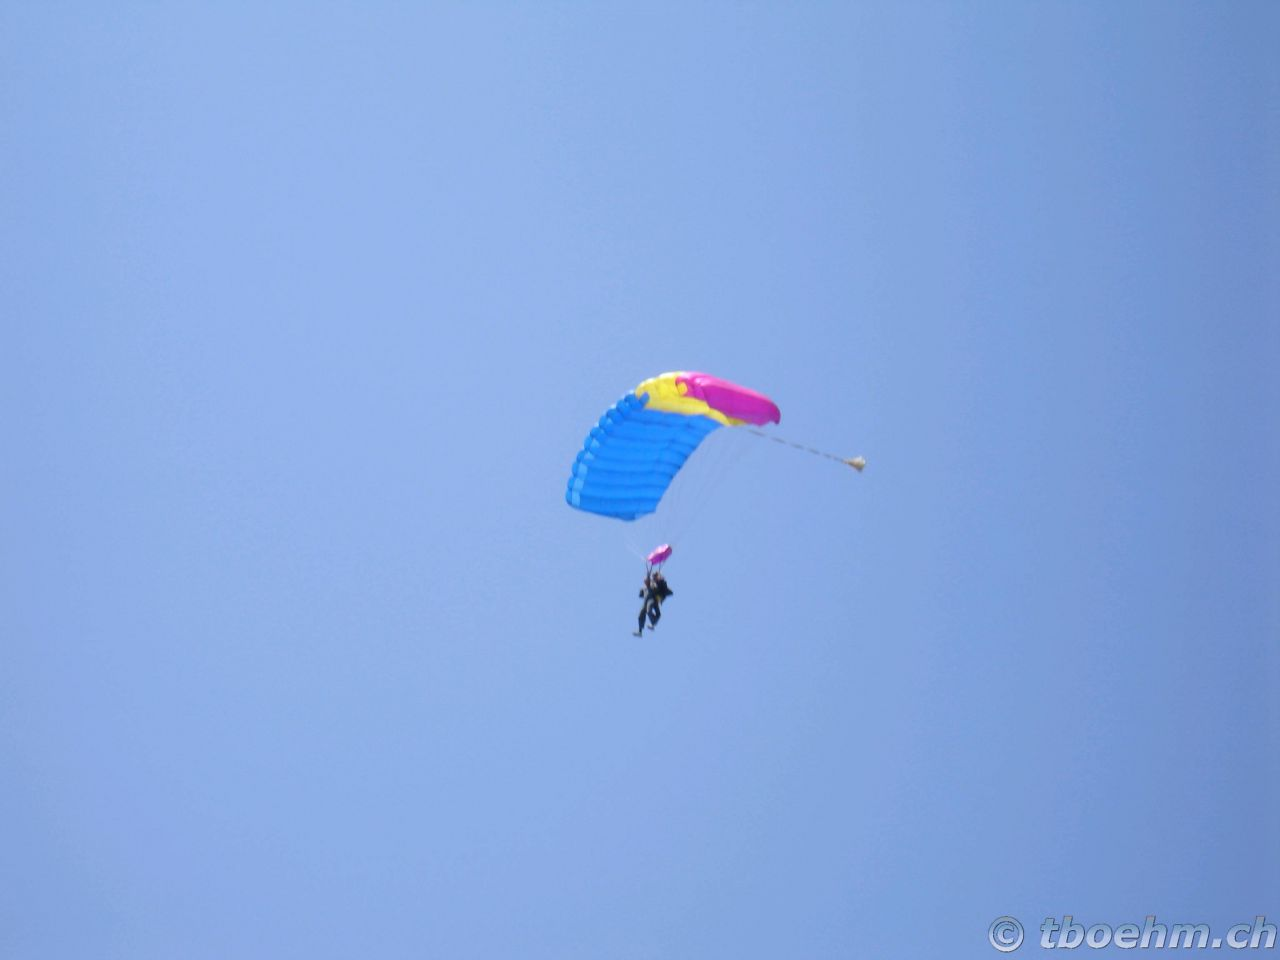 skydive_grenchen_16_07_2006_22_20121125_1940666163